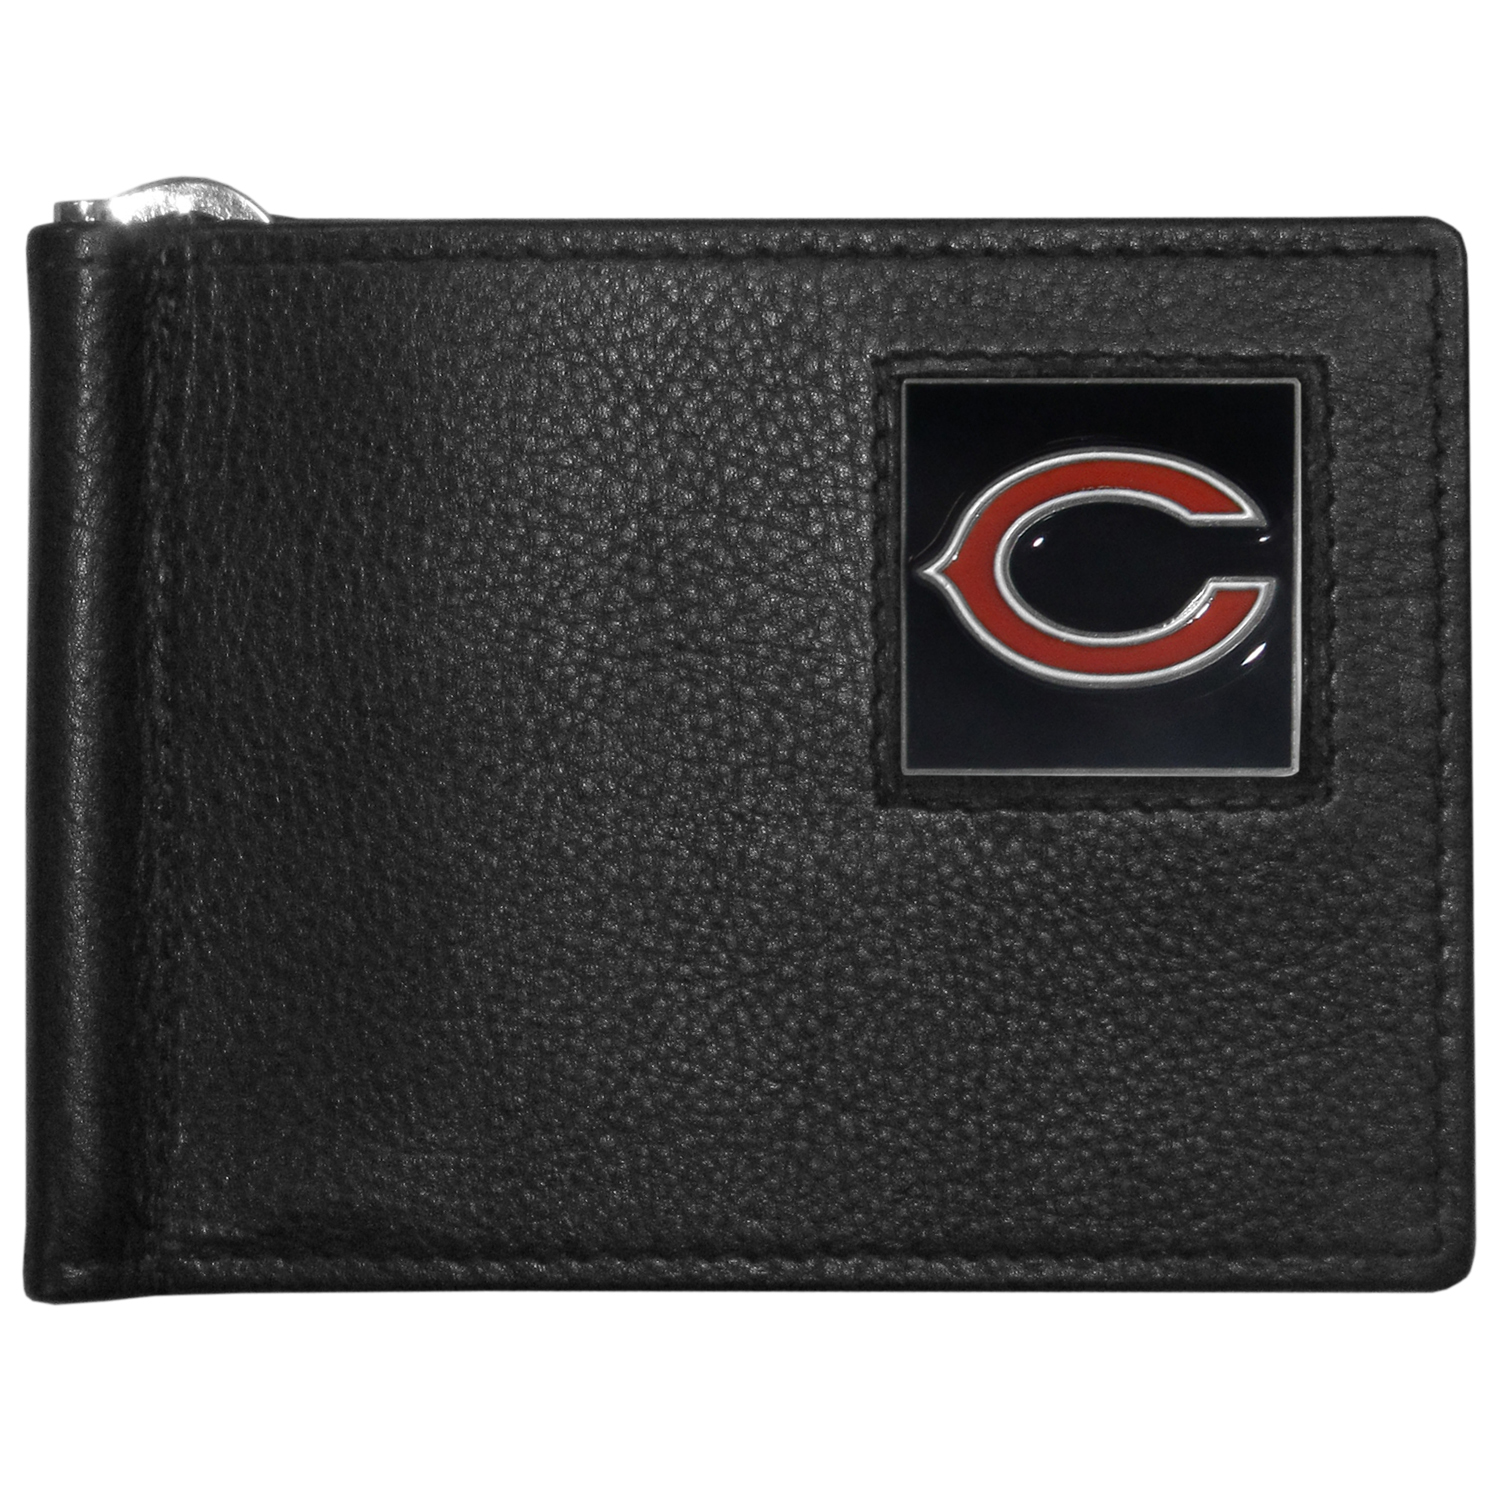 Chicago Bears Leather Bill Clip Wallet - This cool new style wallet features an inner, metal bill clip that lips up for easy access. The super slim wallet holds tons of stuff with ample pockets, credit card slots & windowed ID slot.  The wallet is made of genuine fine grain leather and it finished with a metal Chicago Bears emblem. The wallet is shipped in gift box packaging.